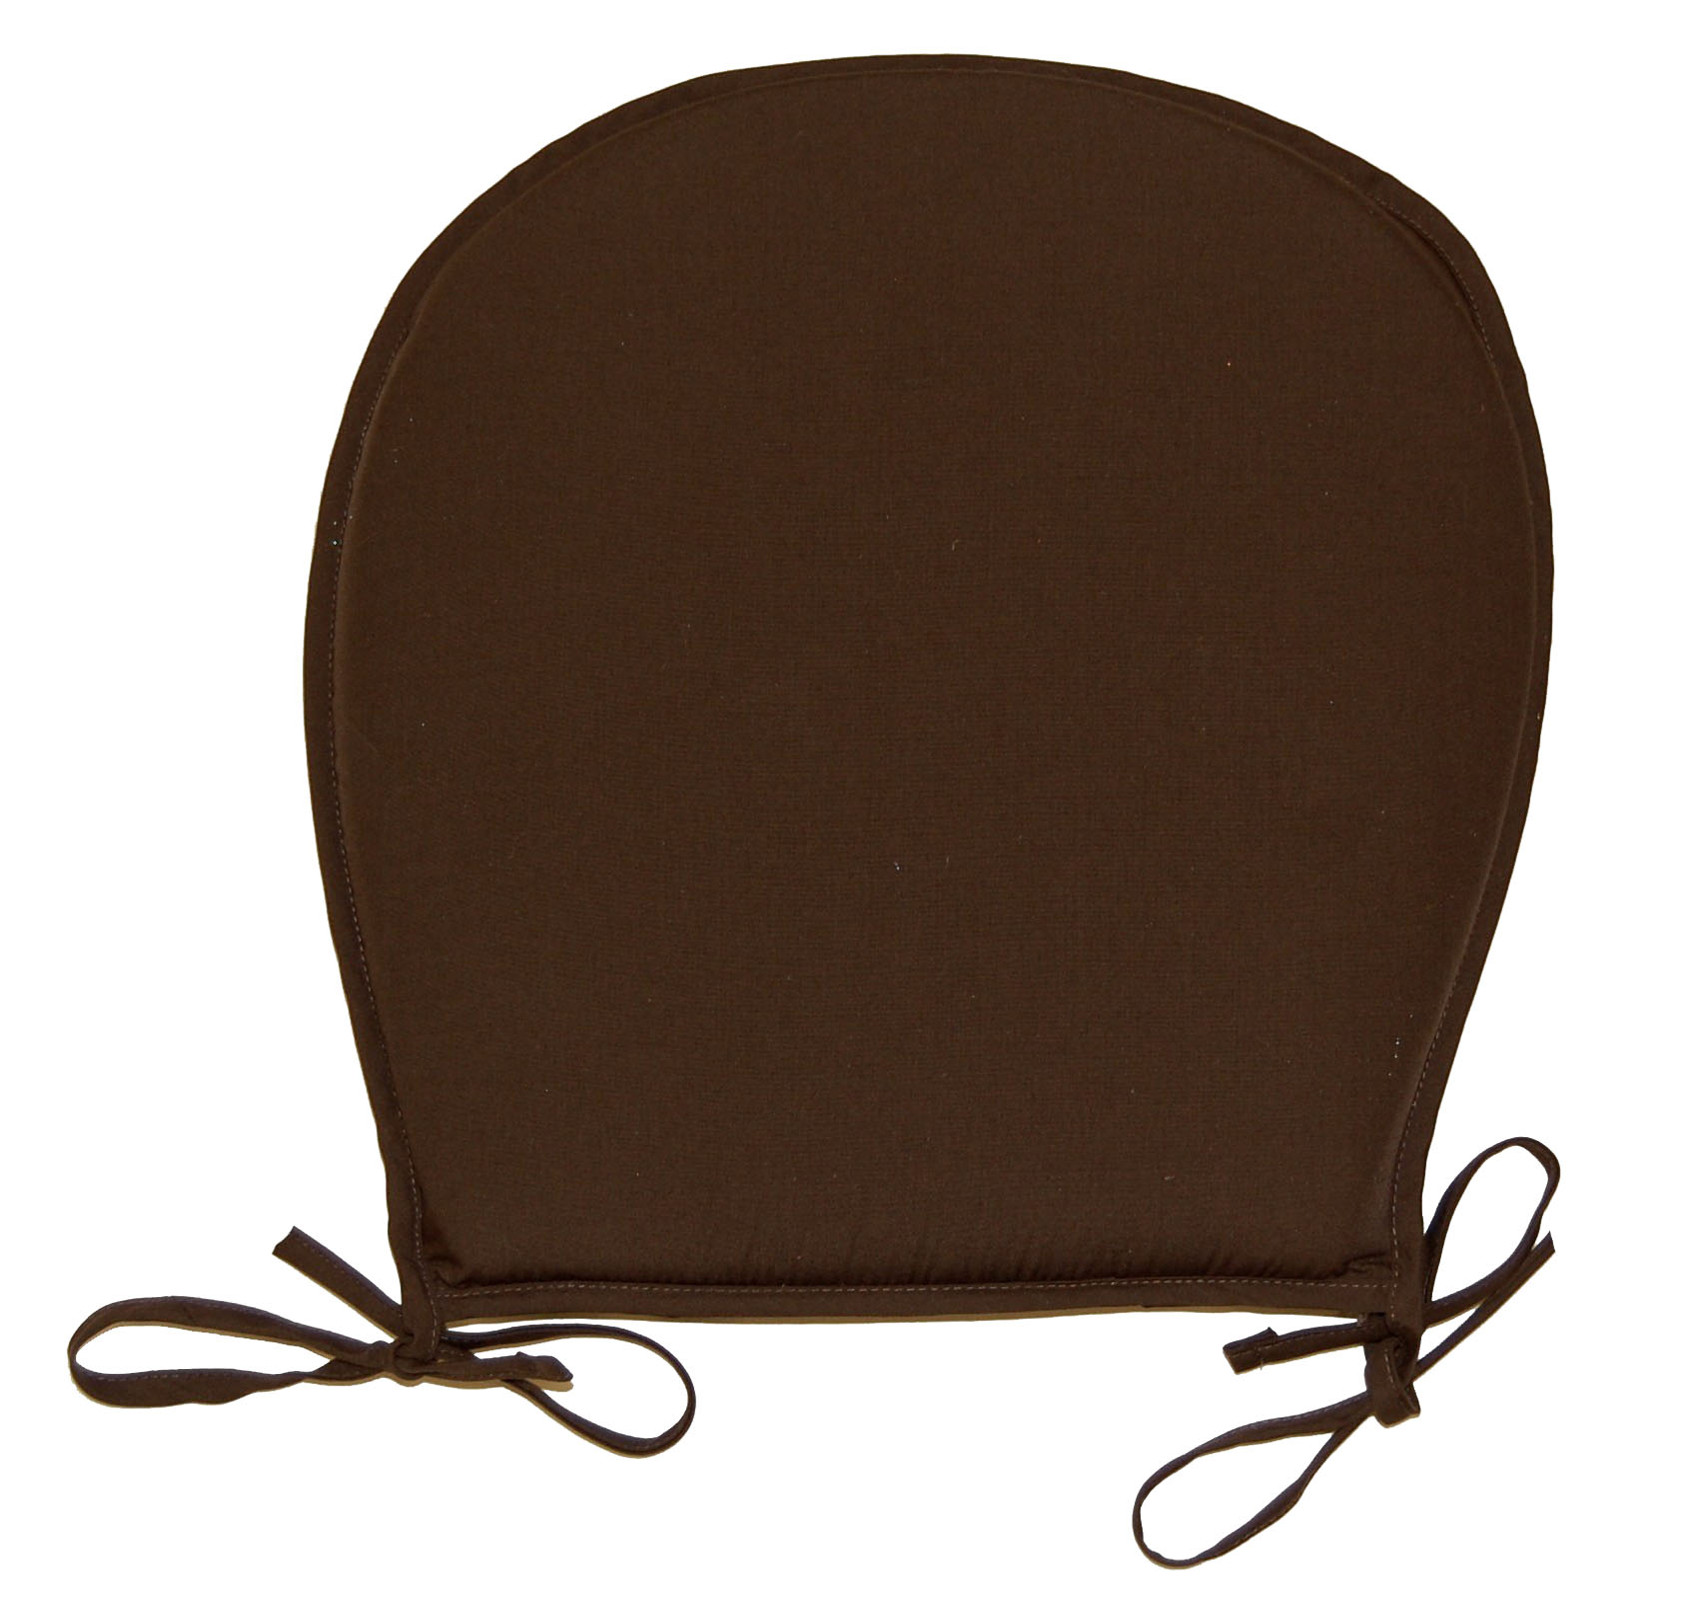 round chair cushions 14 inch simple office kitchen seat pad garden furniture dining room